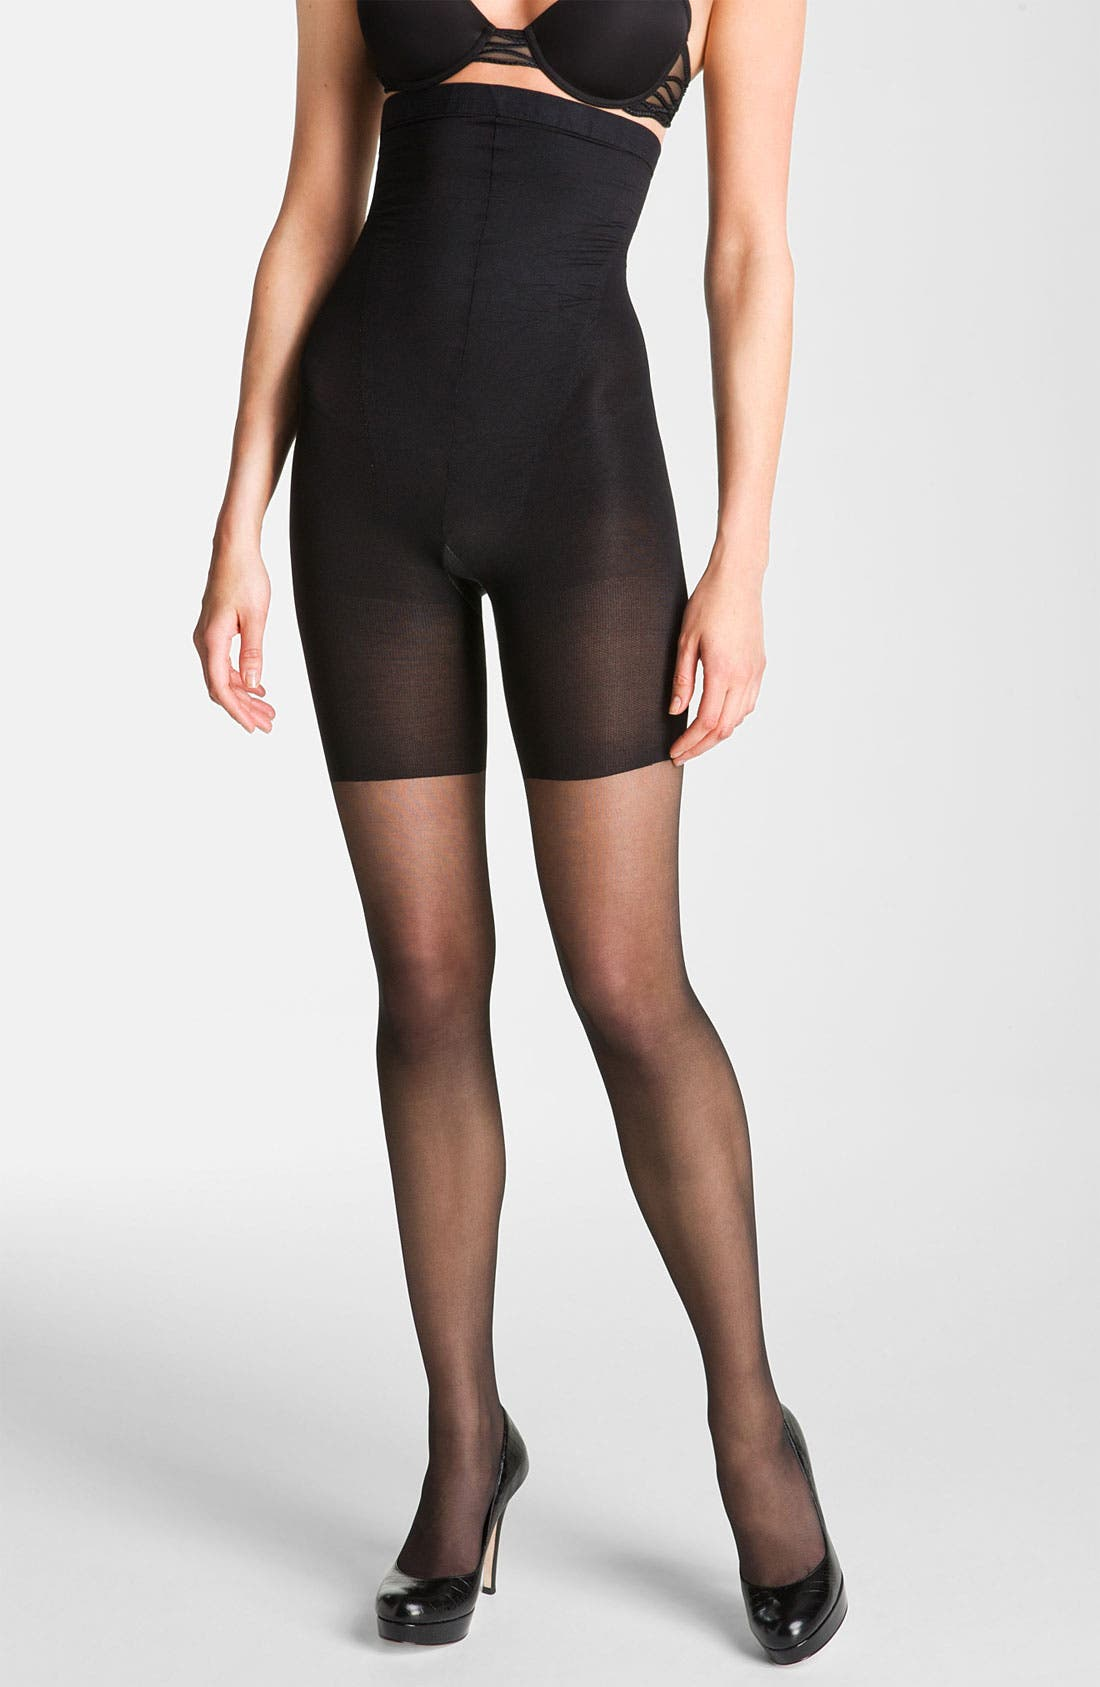 Alternate Image 1 Selected - SPANX® 'Original' High Waisted Shaping Sheers (Regular & Plus Size)